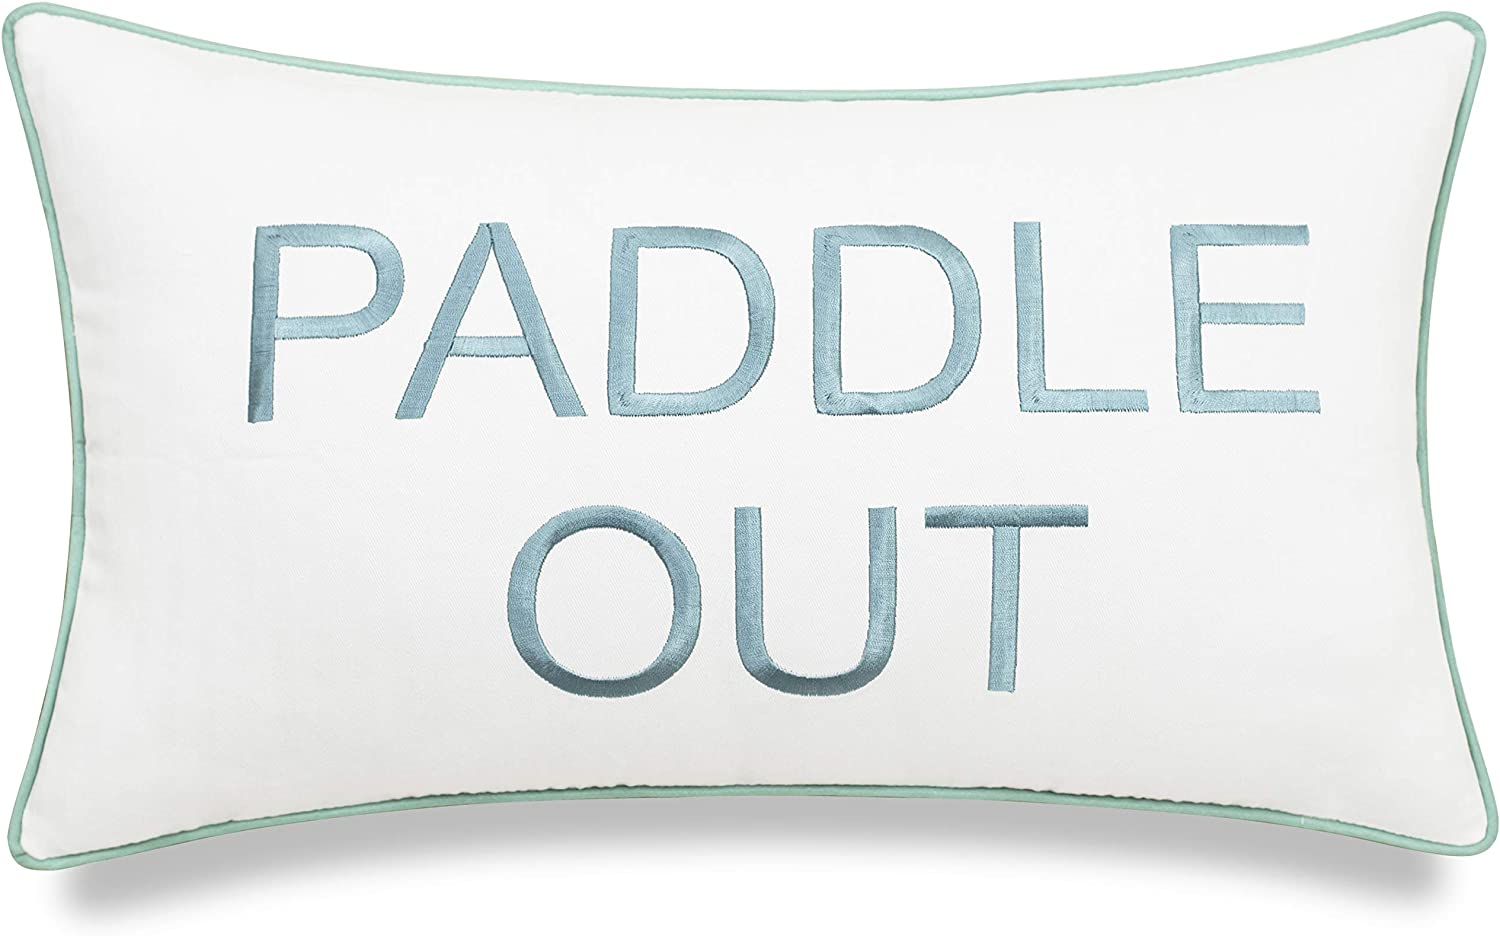 """DecorHouzz Embroidered Beach Inspired Pillowcase Paddle Out Surf Decor Beach House Coastal Living Surfer Gift Ocean Lover California Style (Paddle Out (Ivory), 12""""x20"""")"""